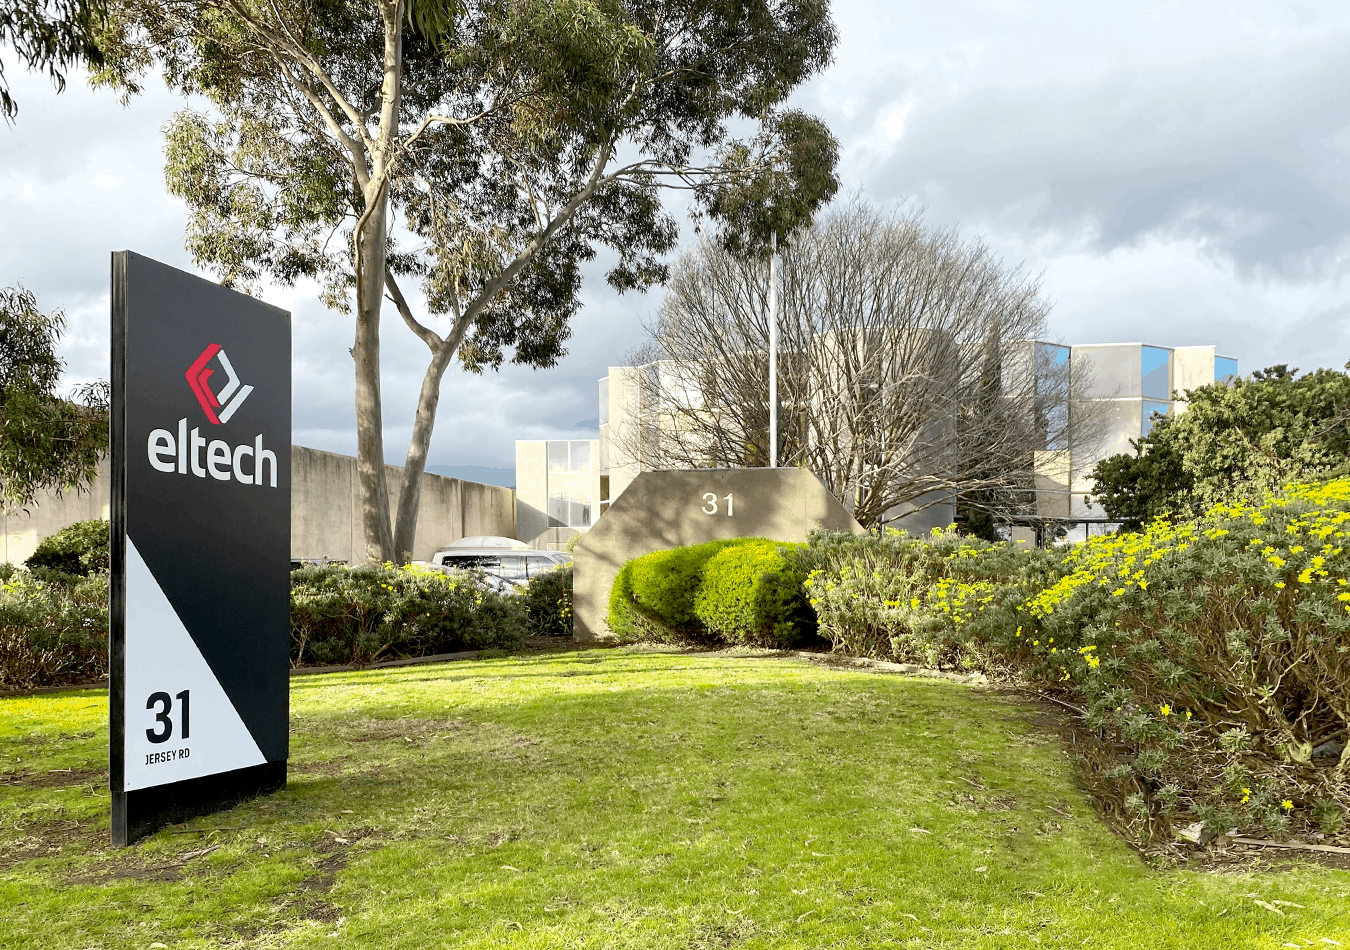 Head office: 31 Jersey Rd, Bayswater, VIC 3153